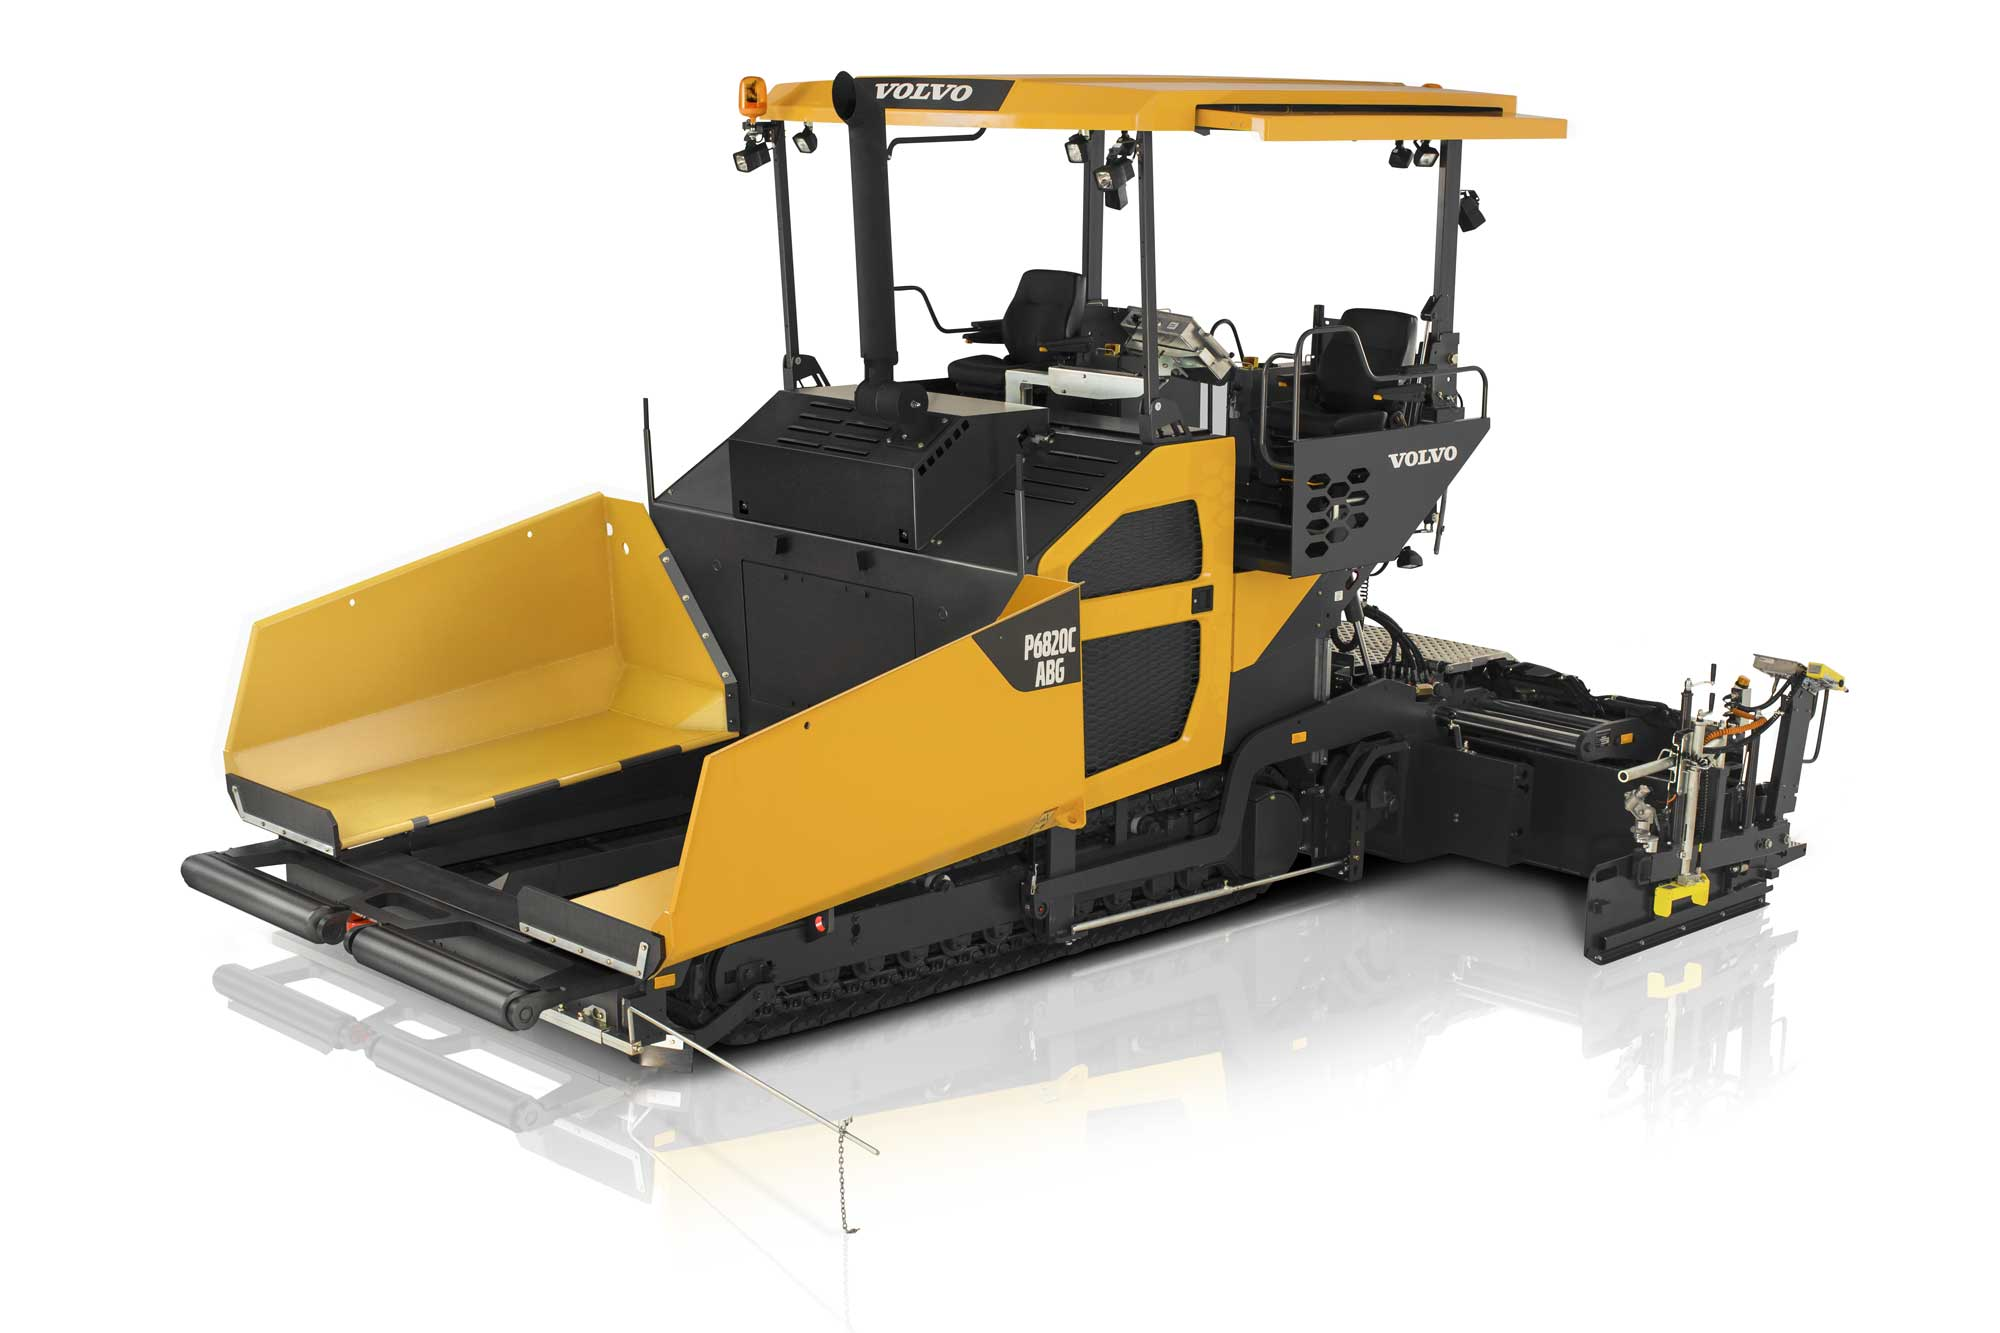 Volvo launches P6820C ABG paver into India